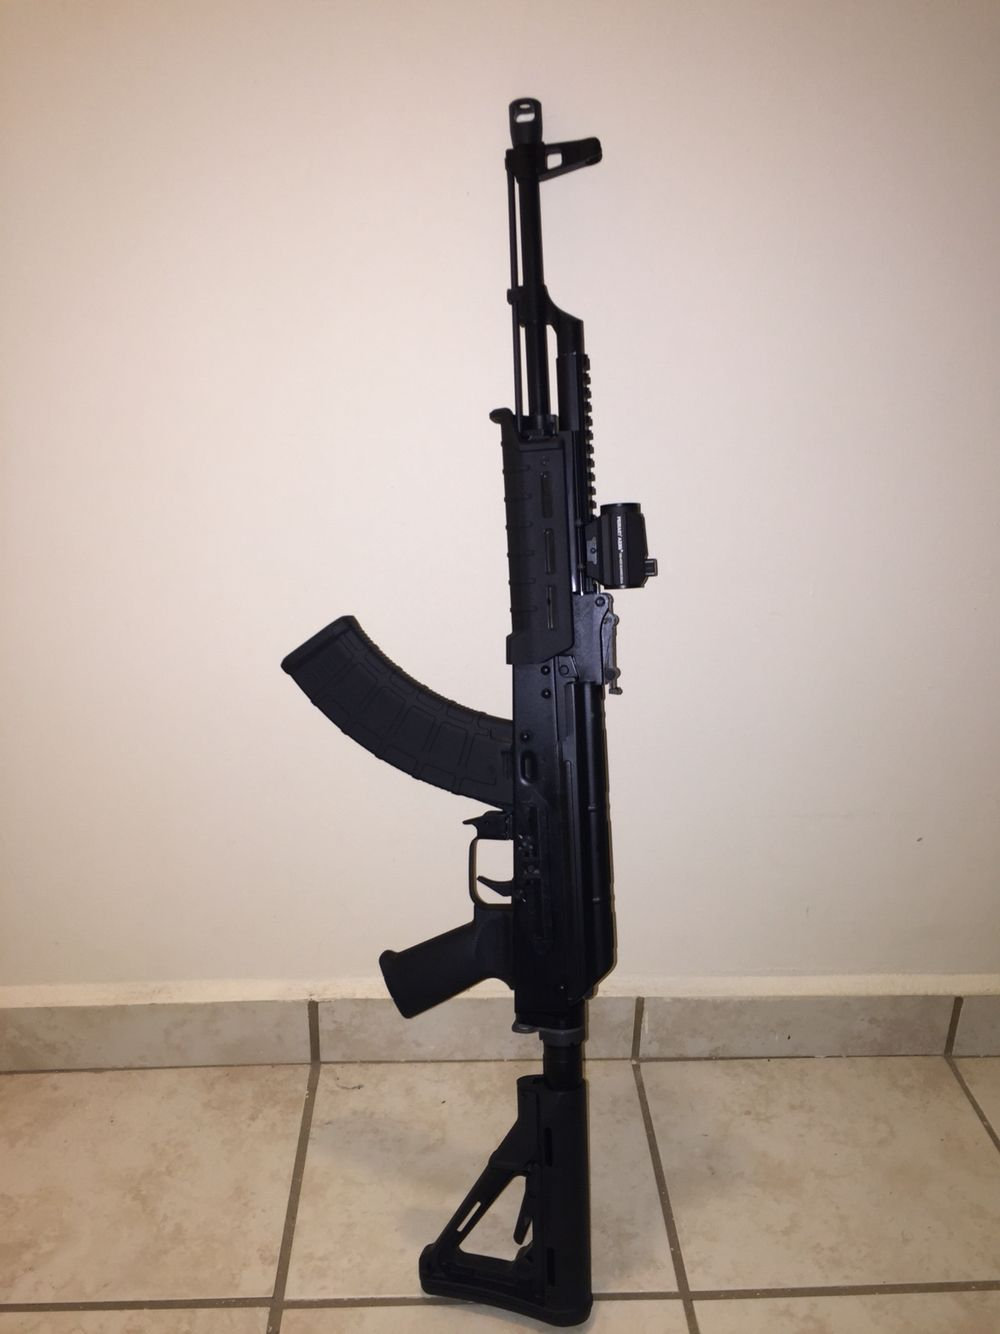 DDI with Magpul Furniture, Ultimak Rail, Primary Arms